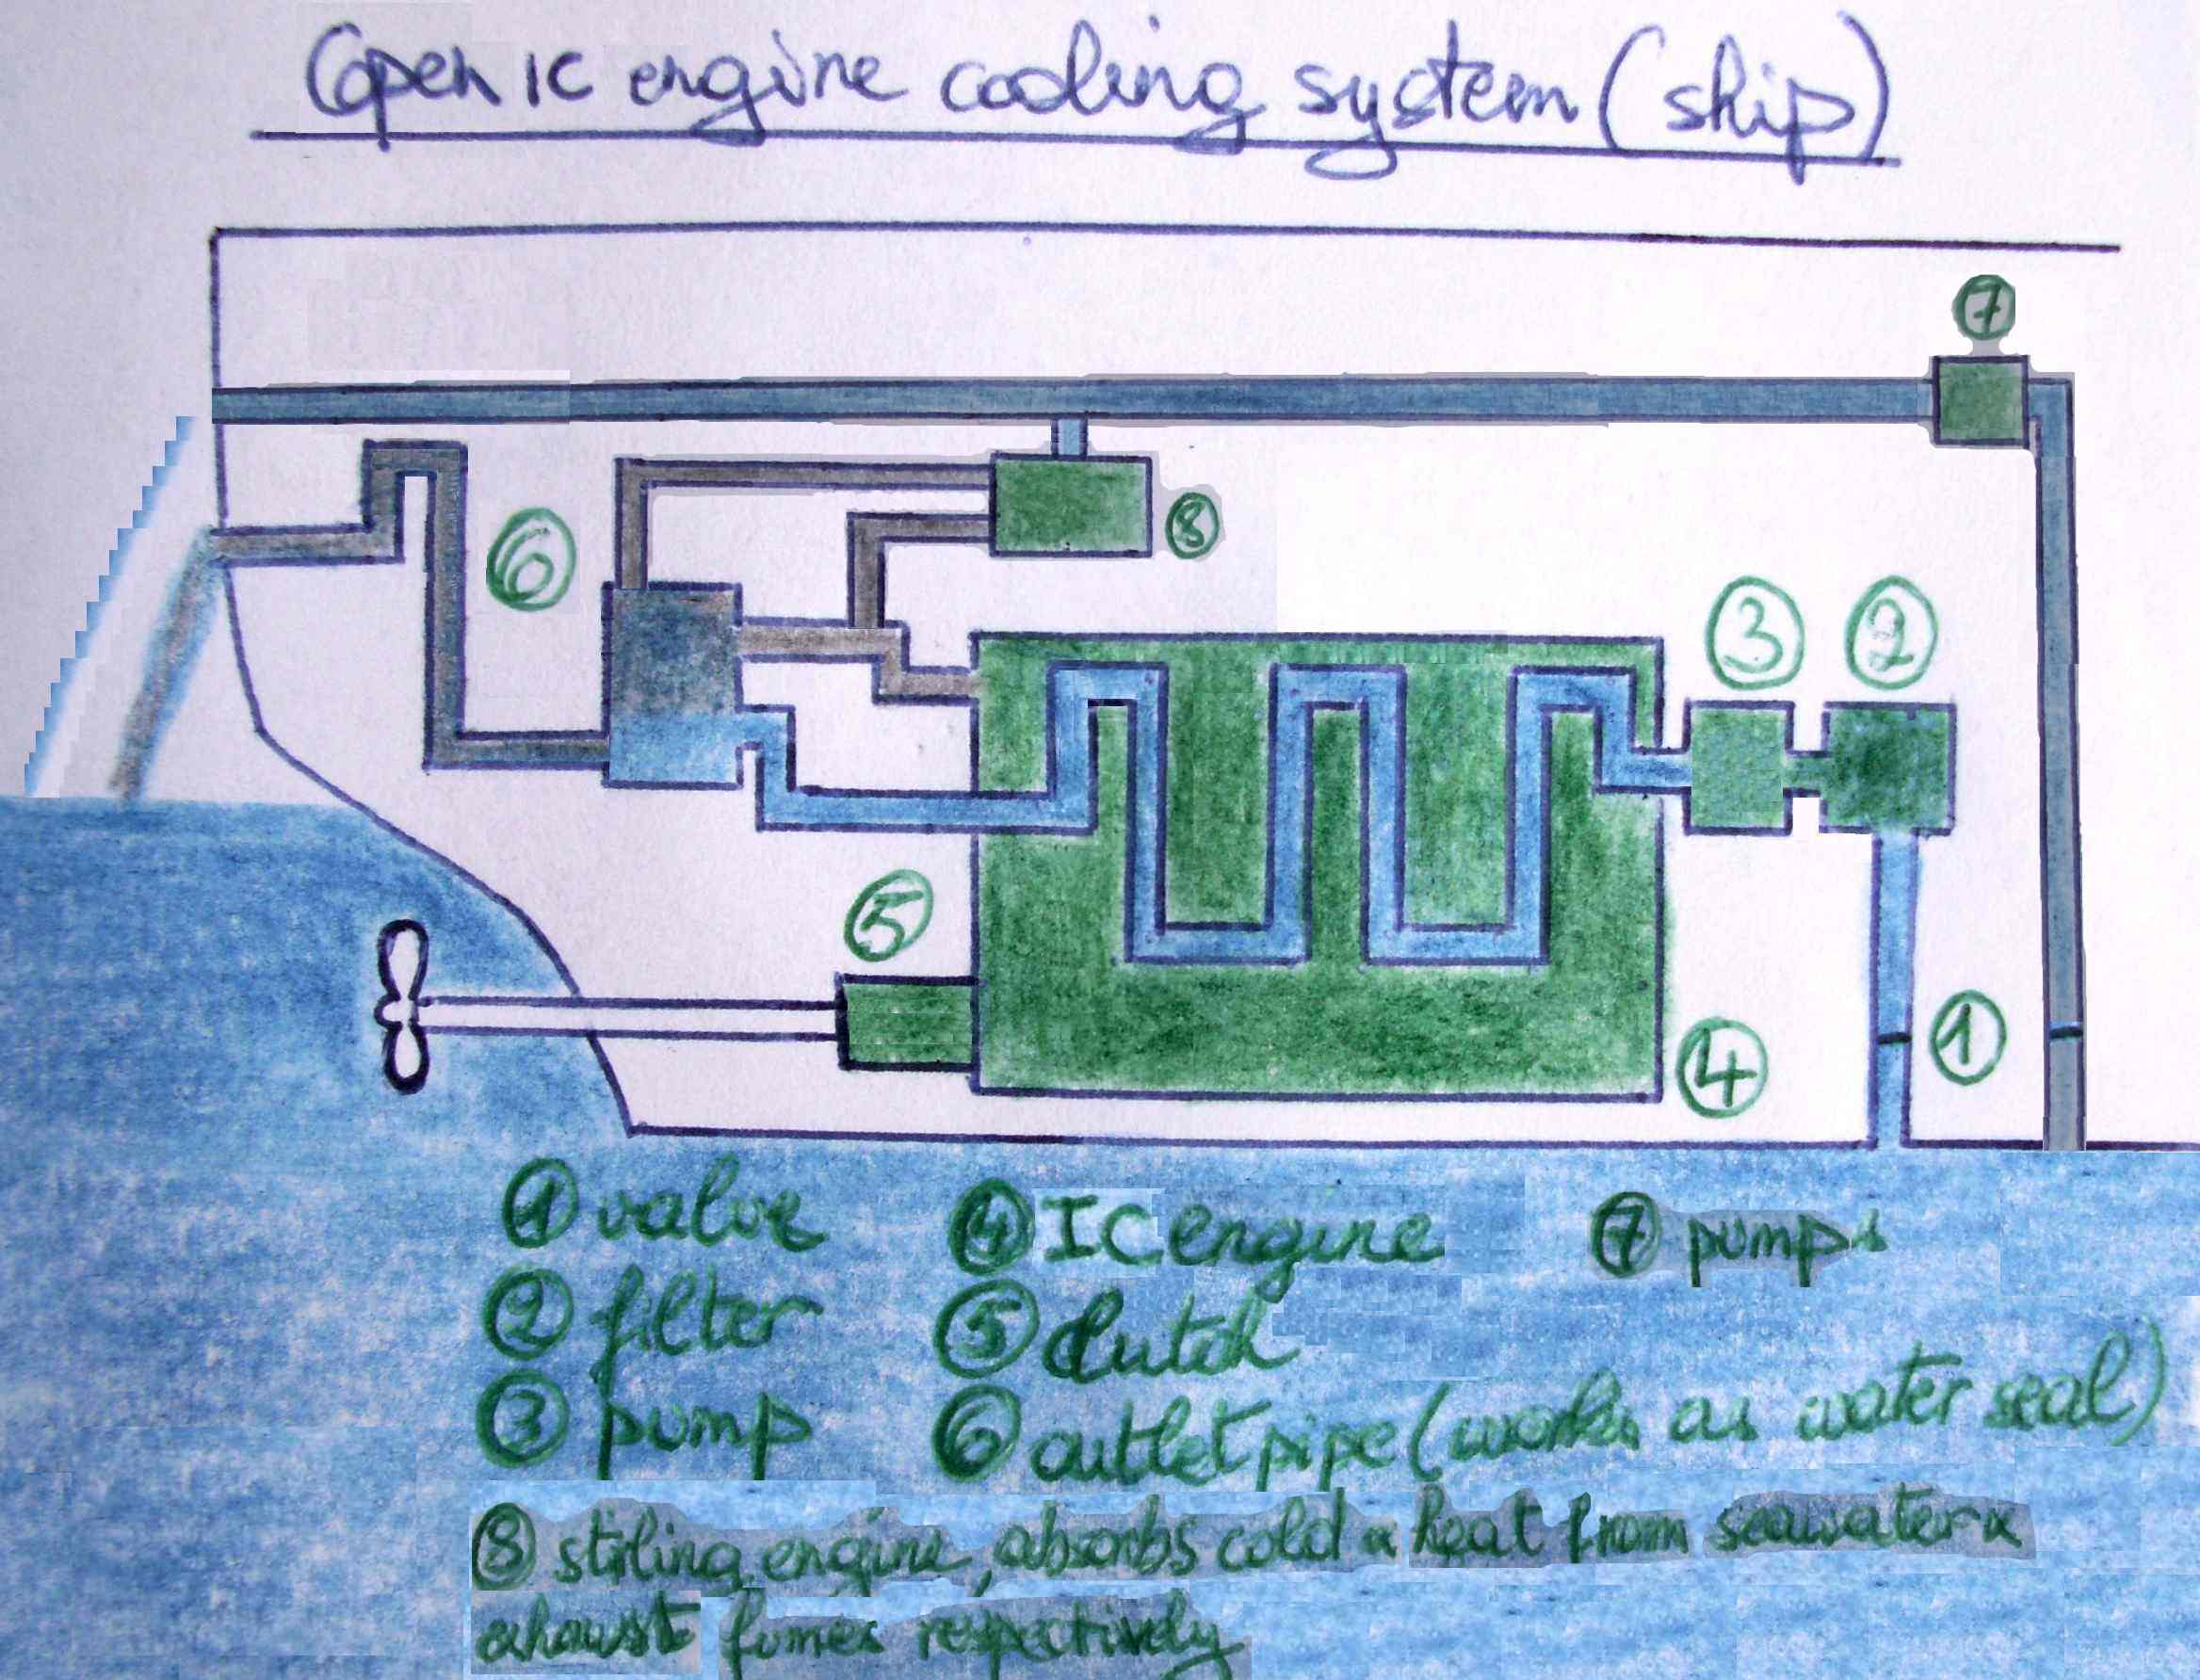 FileOpen IC engine cooling system with thermal energy recovery – Internal Combustion Engine Cooling System Diagram